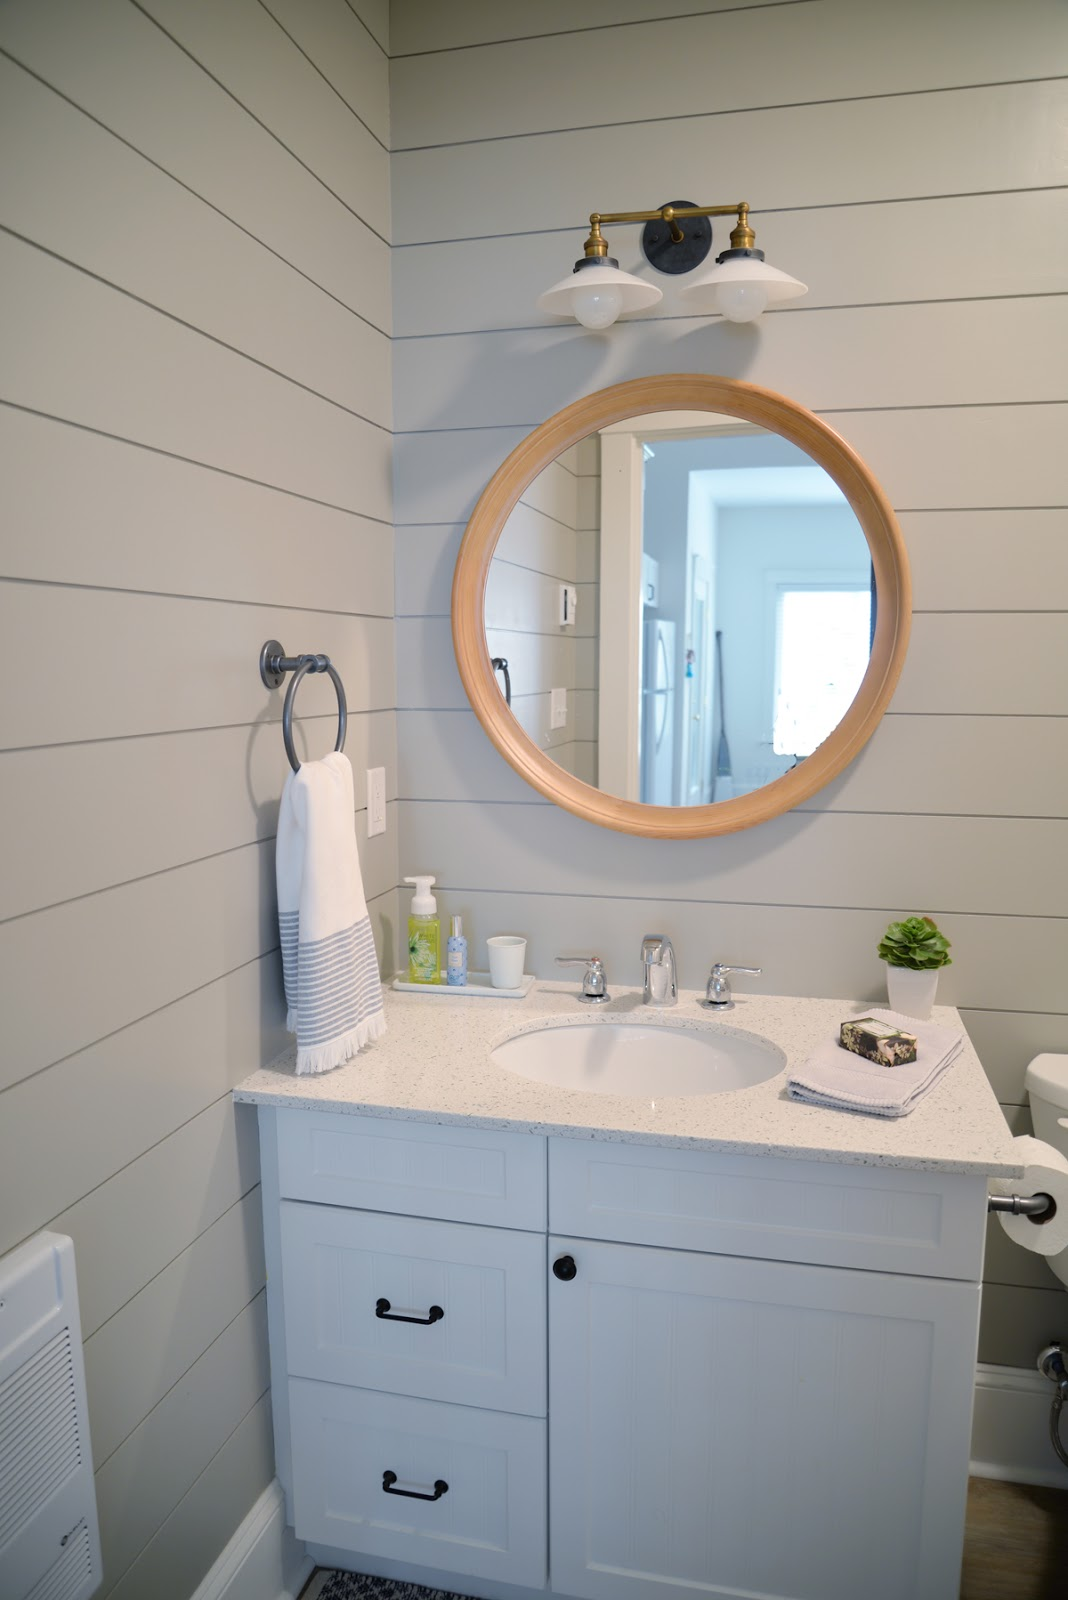 grey painted shiplap in the bathroom, round wood mirror, milk glass sconce | Ramblingrenovators.ca